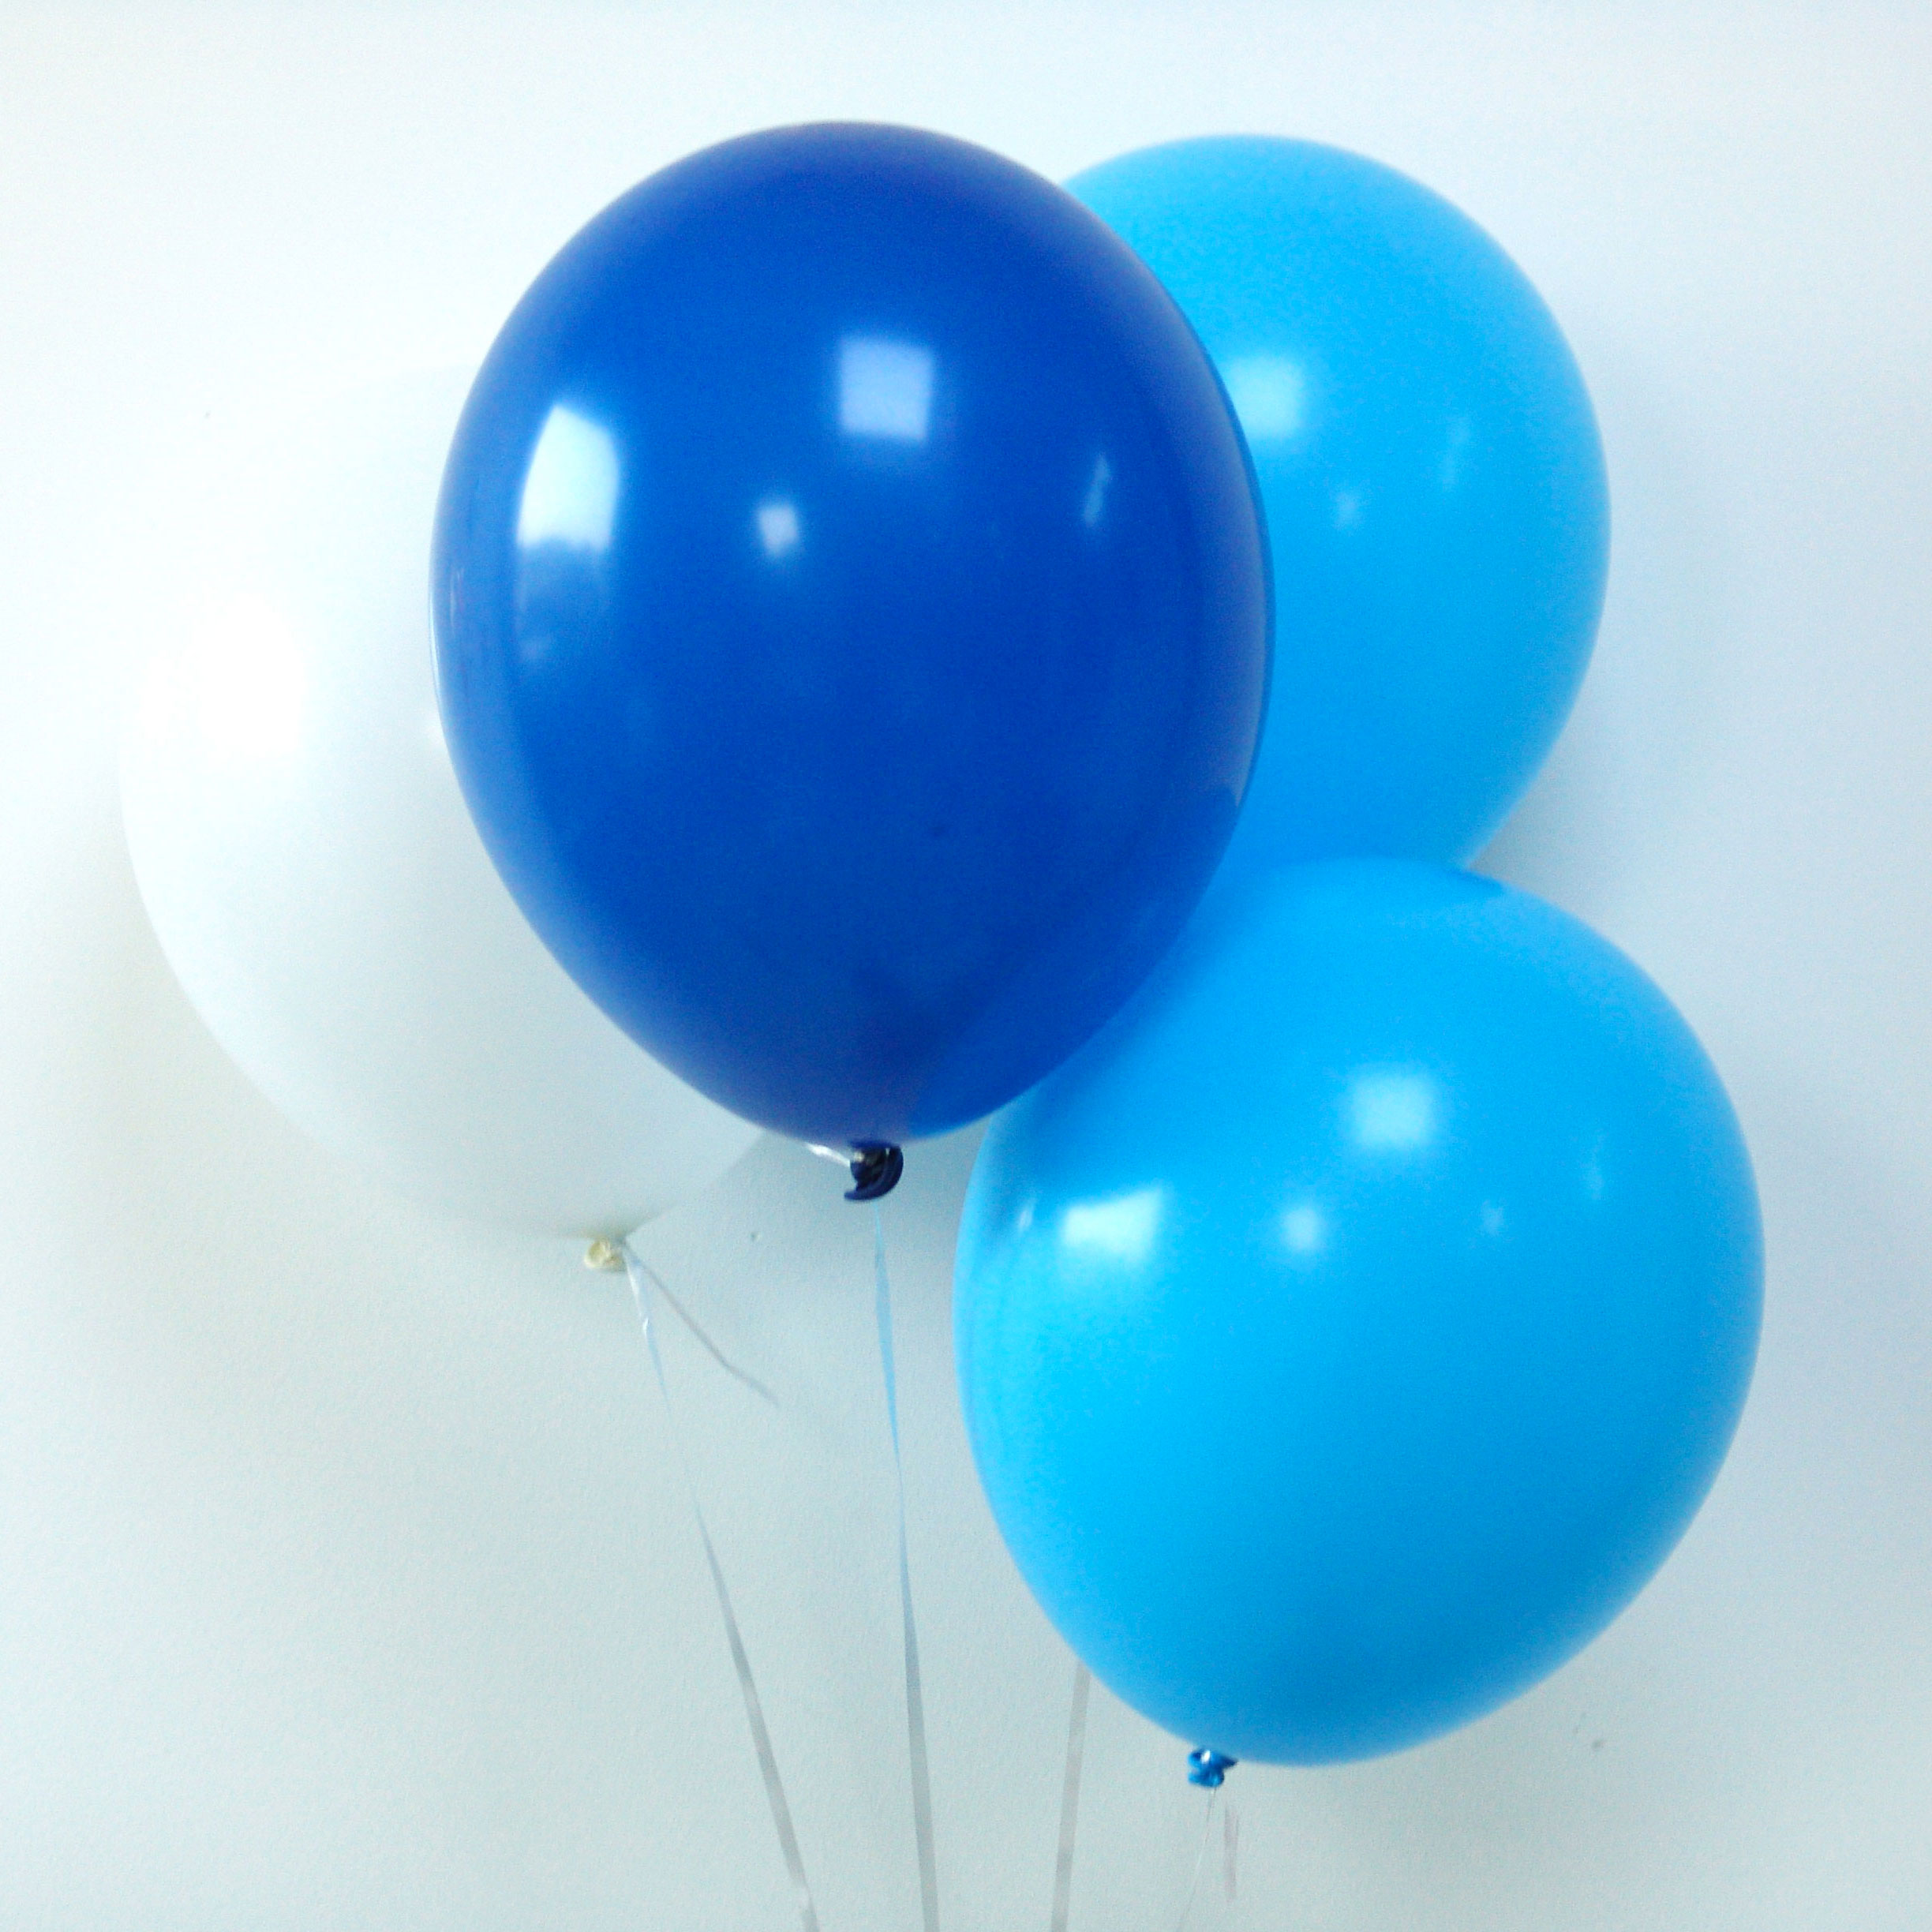 assortiment de ballons de baudruche bleu anniversaire achat vente. Black Bedroom Furniture Sets. Home Design Ideas